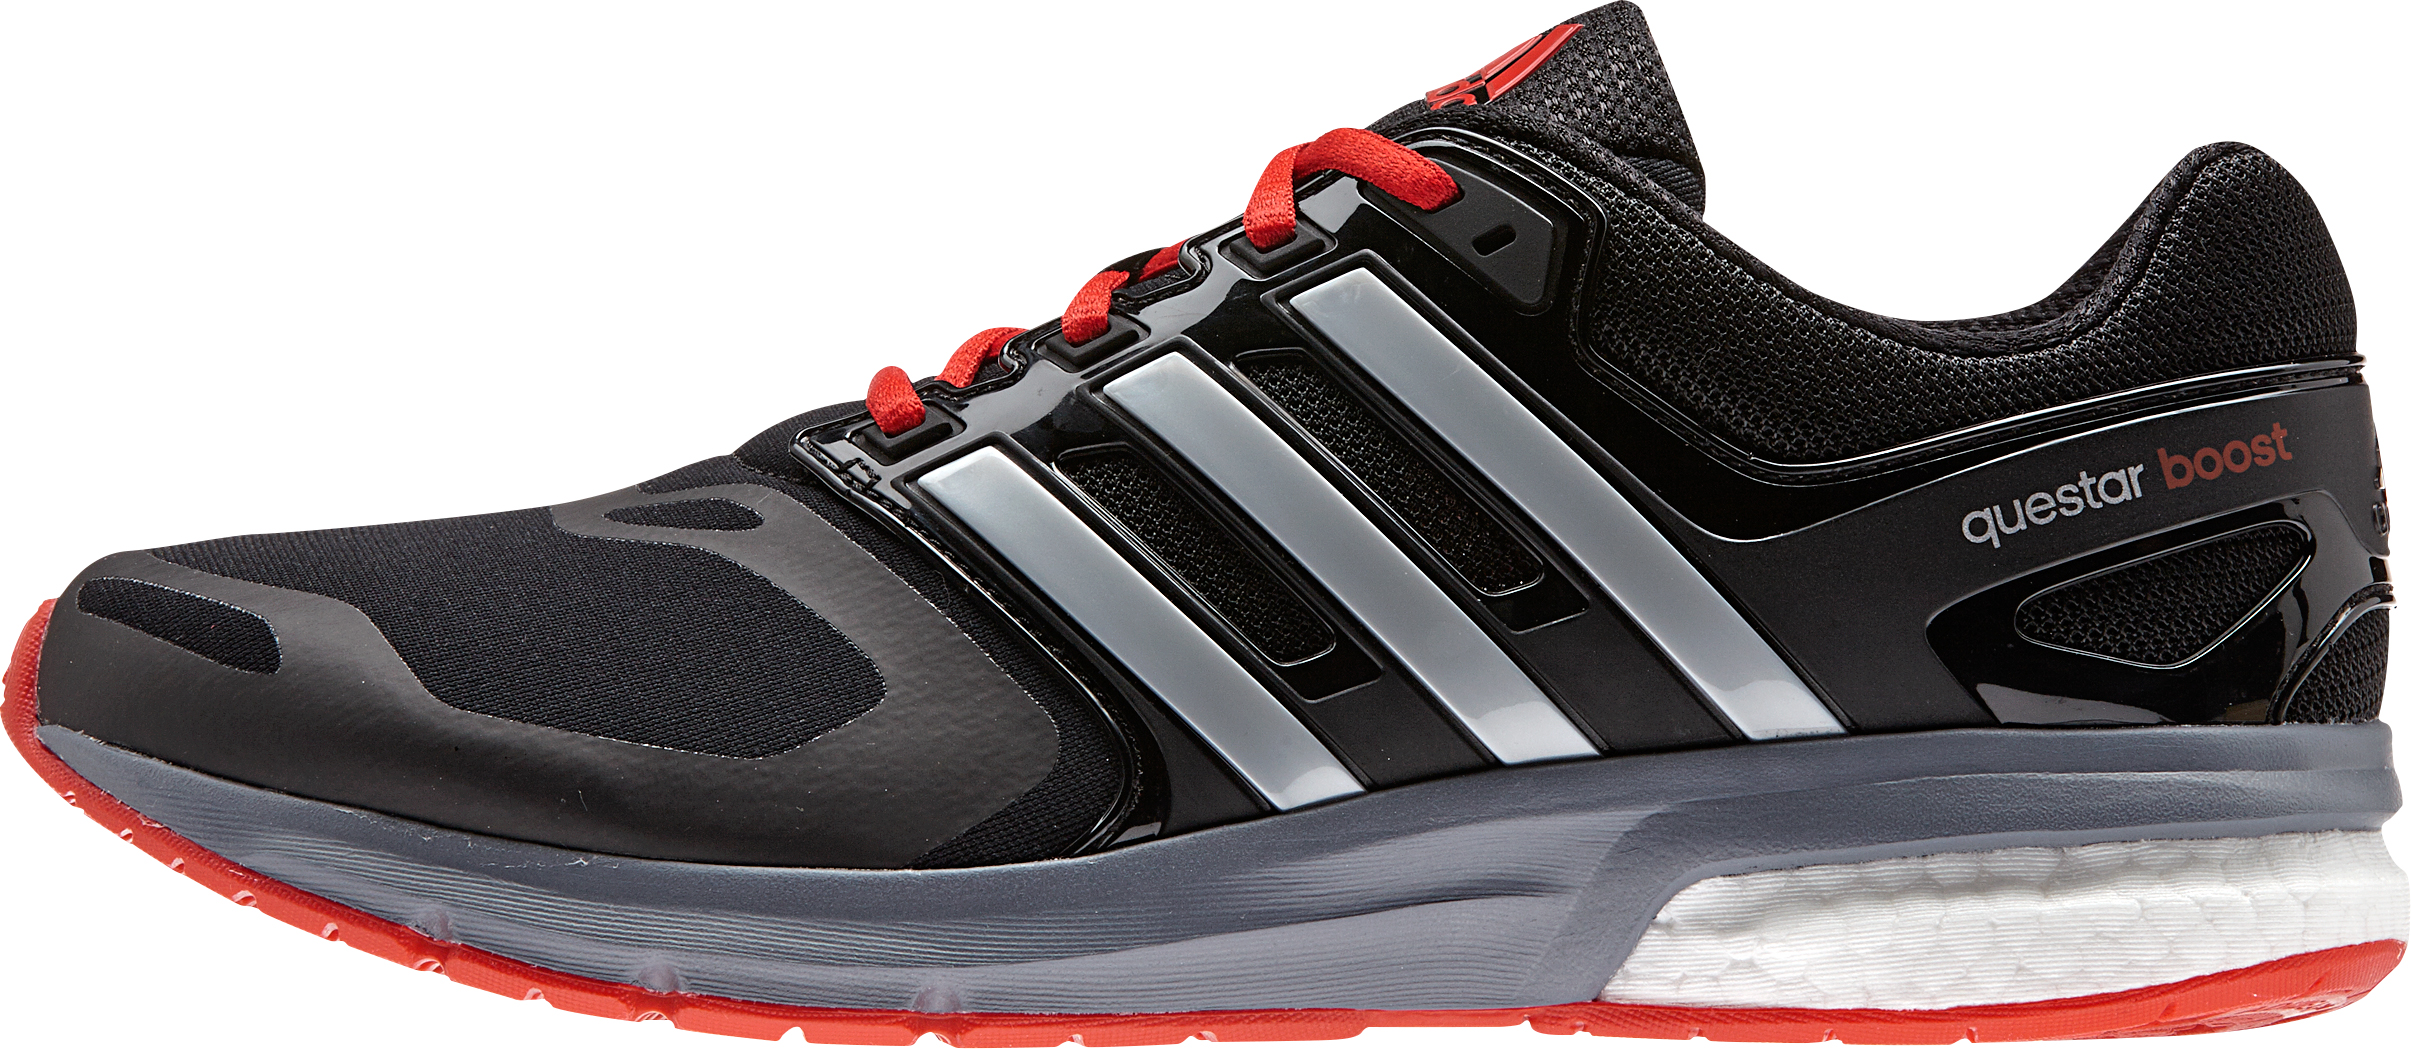 adidas questar boost shoes